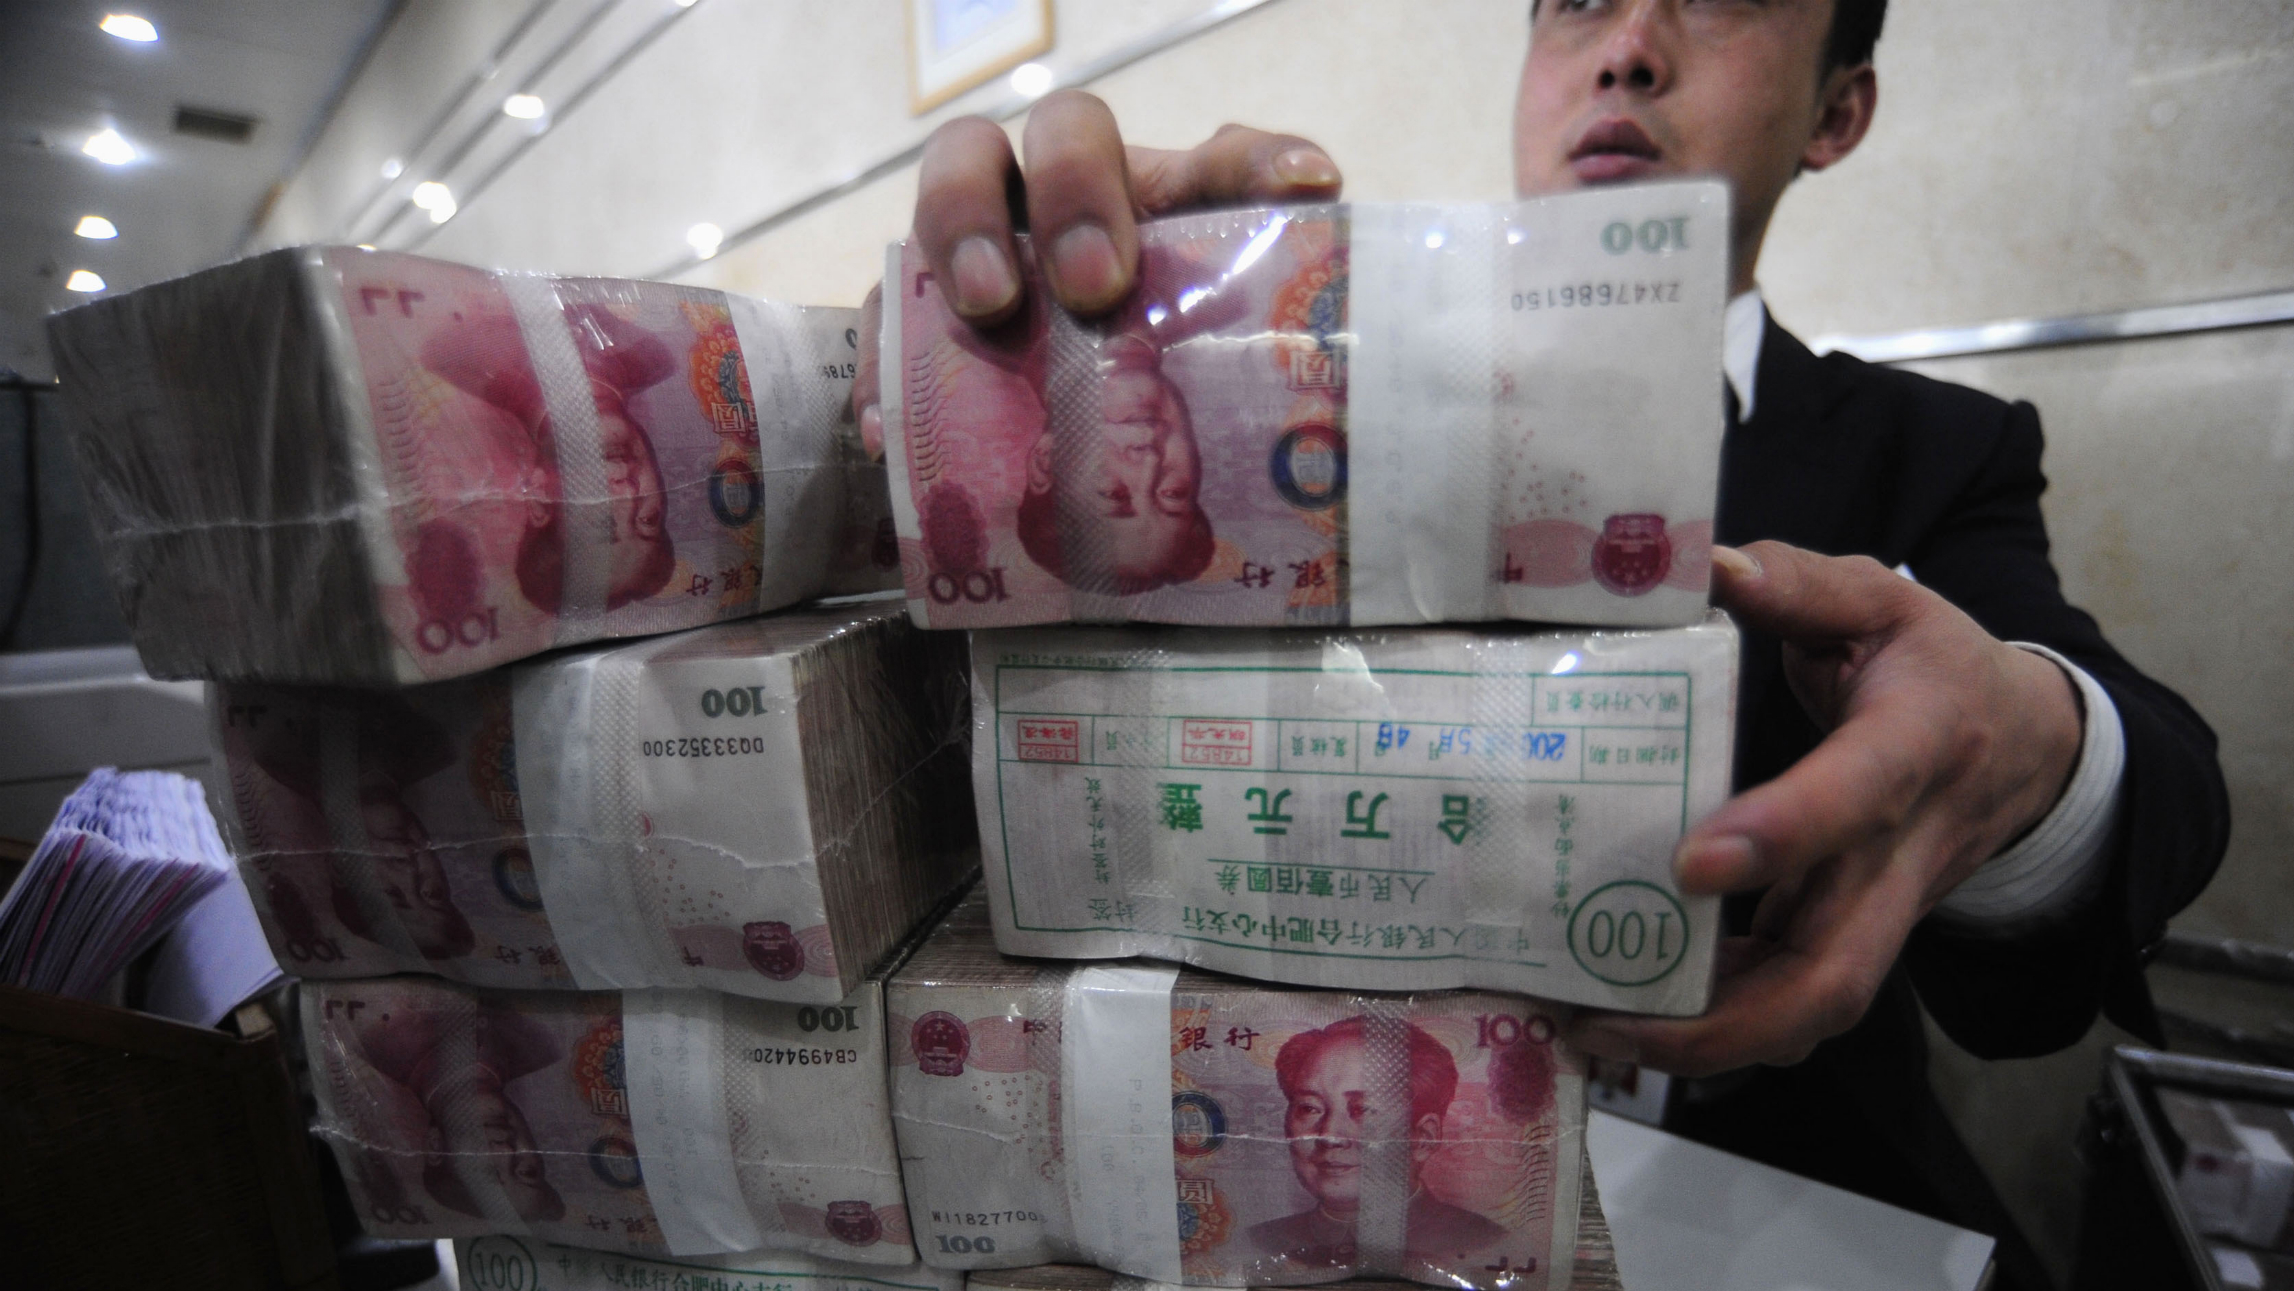 An employee packs bundles of Renminbi banknotes at a branch of Bank of China in Hefei, Anhui province February 8, 2010. China's central bank said on Monday that it plans to auction 40 billion yuan ($5.9 billion) of three-month finance ministry deposits to commercial banks on Thursday. REUTERS/Stringer